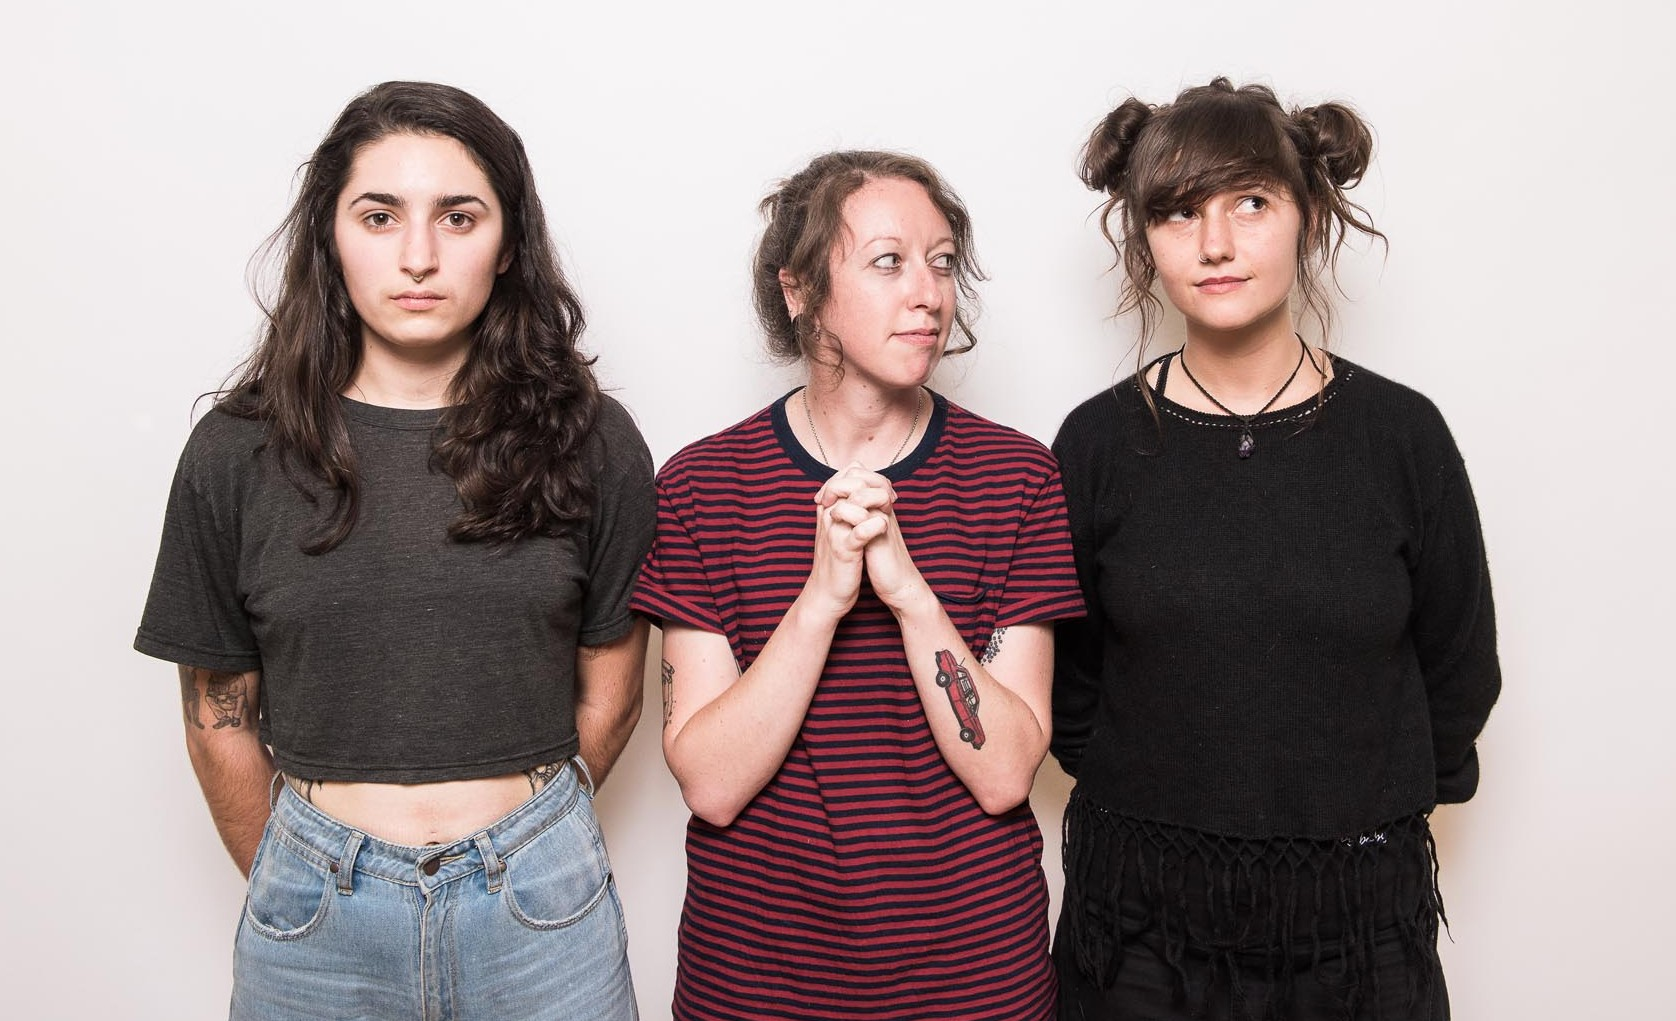 camp_cope_by_ian_laidlaw_print-1_soh_exclusive.jpg